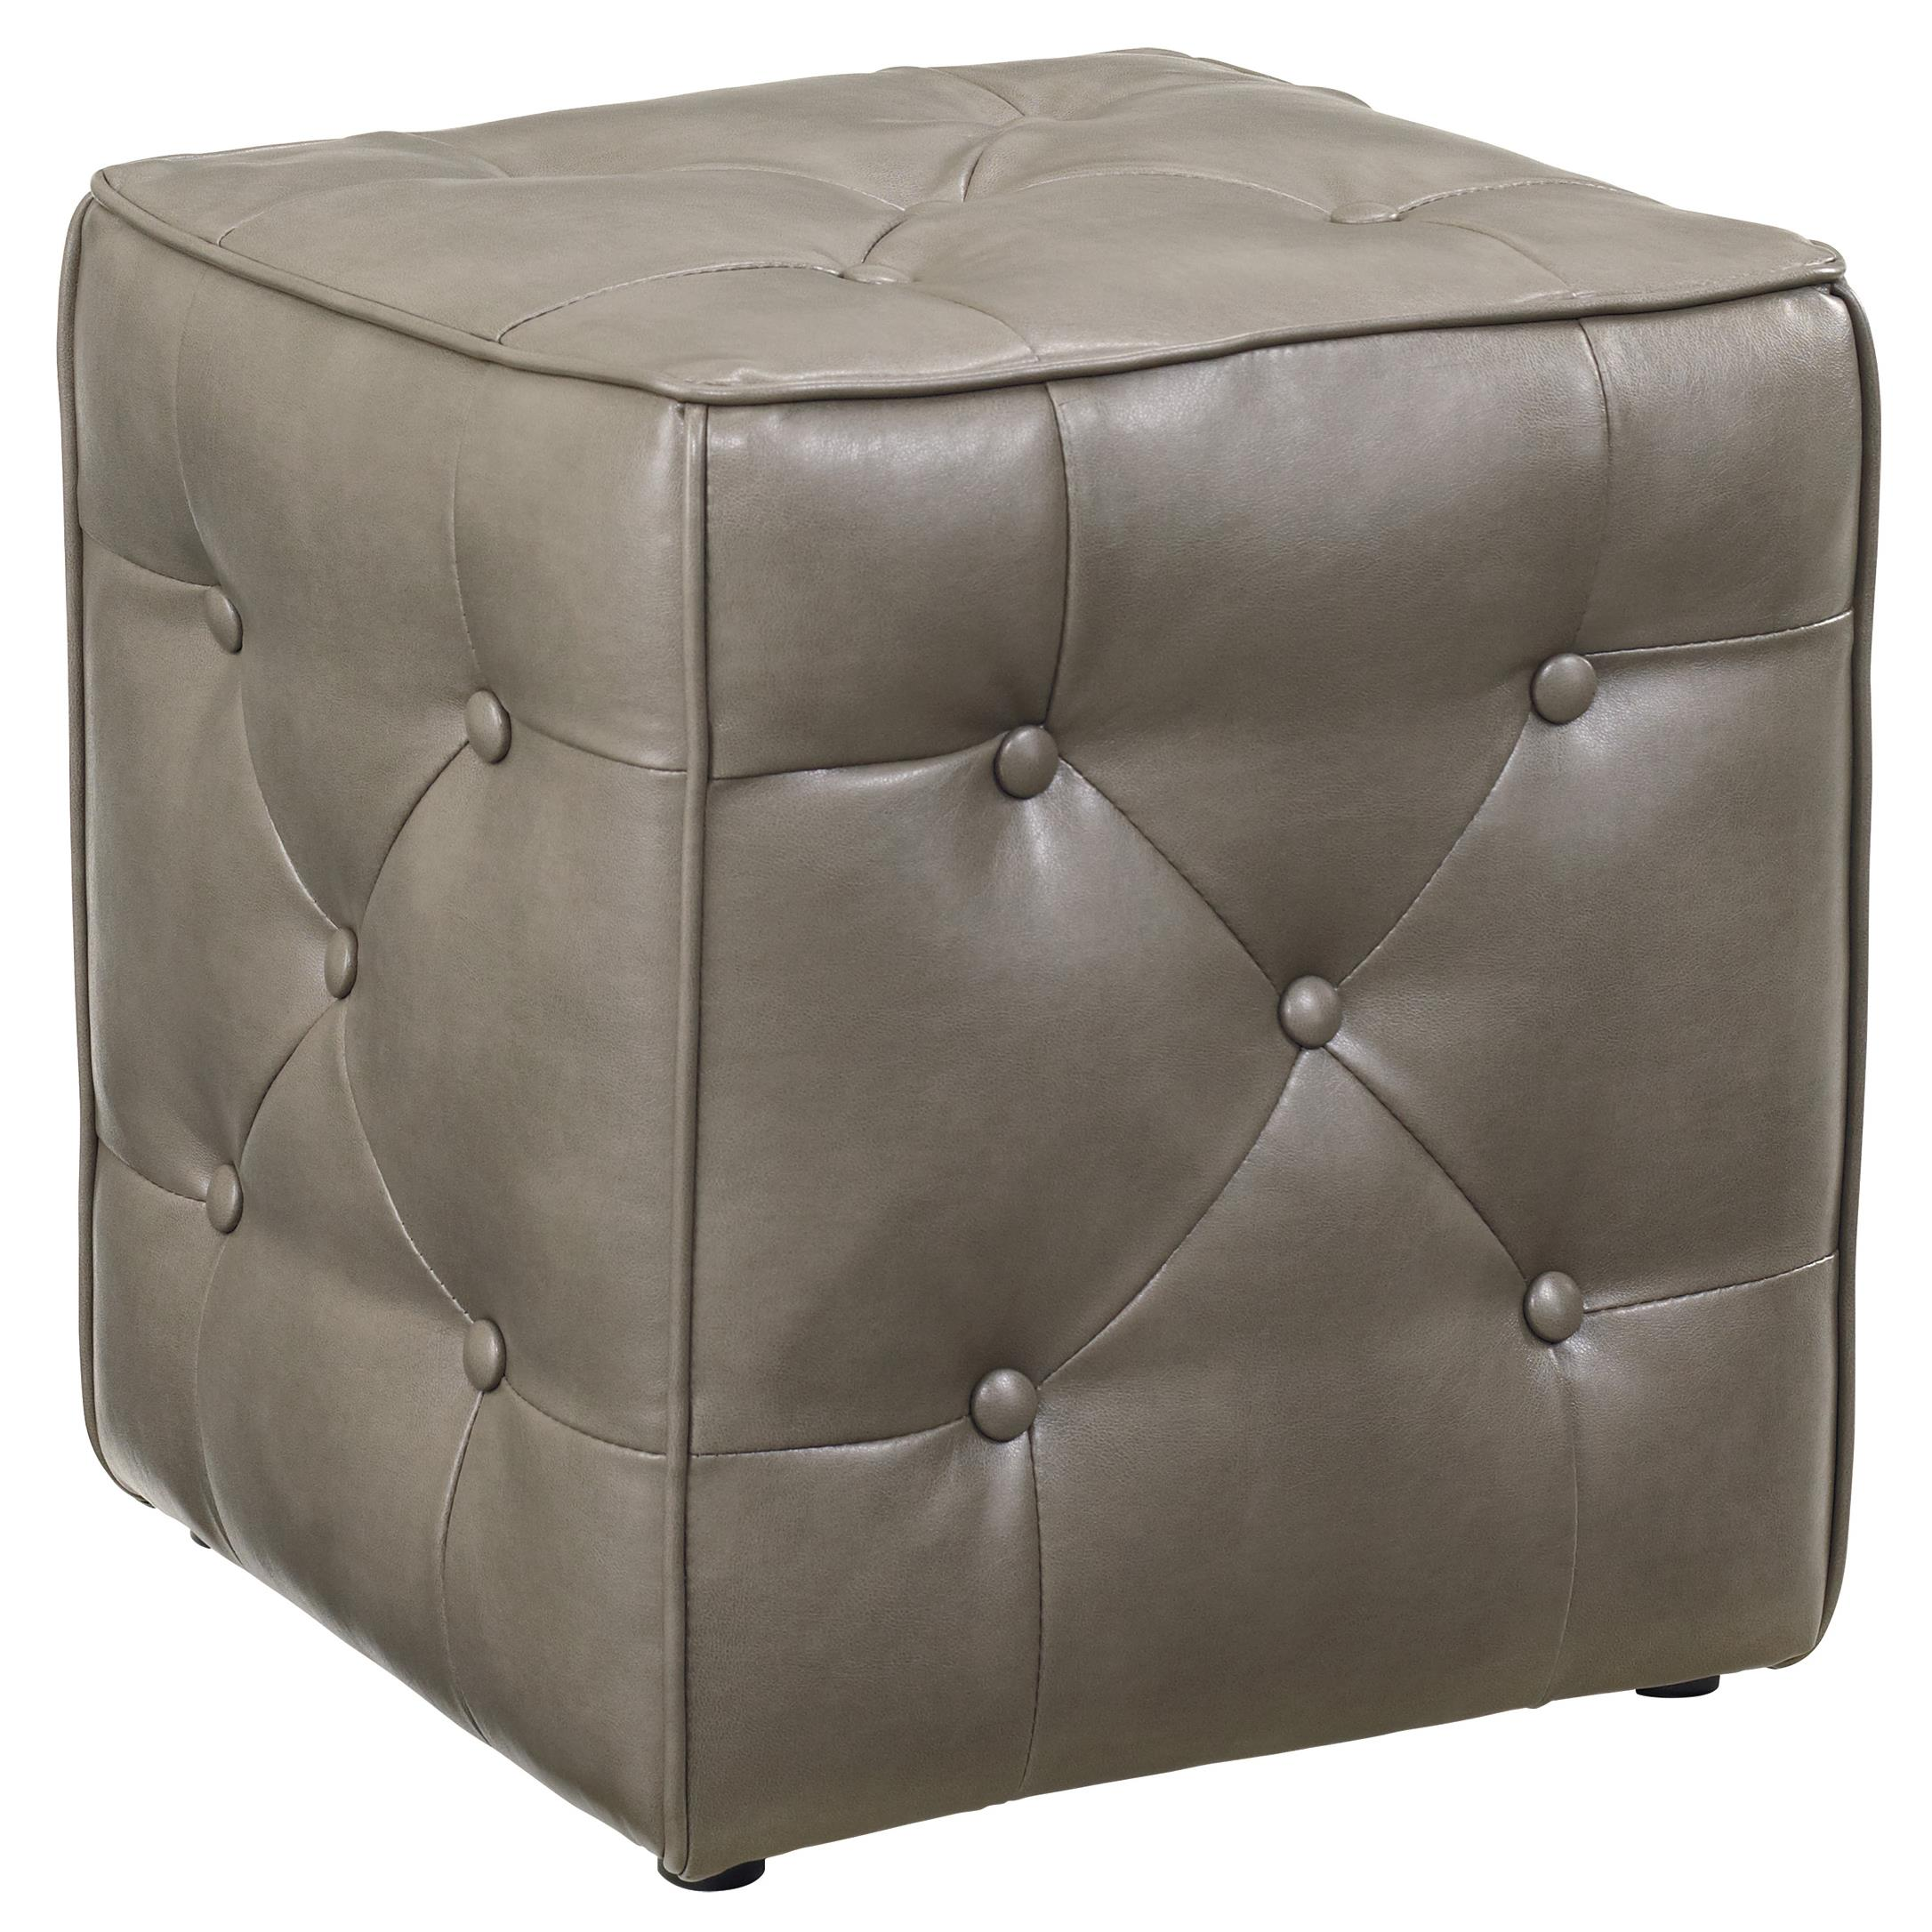 Signature Design by Ashley Jive Accent Ottoman - Item Number: 4740213